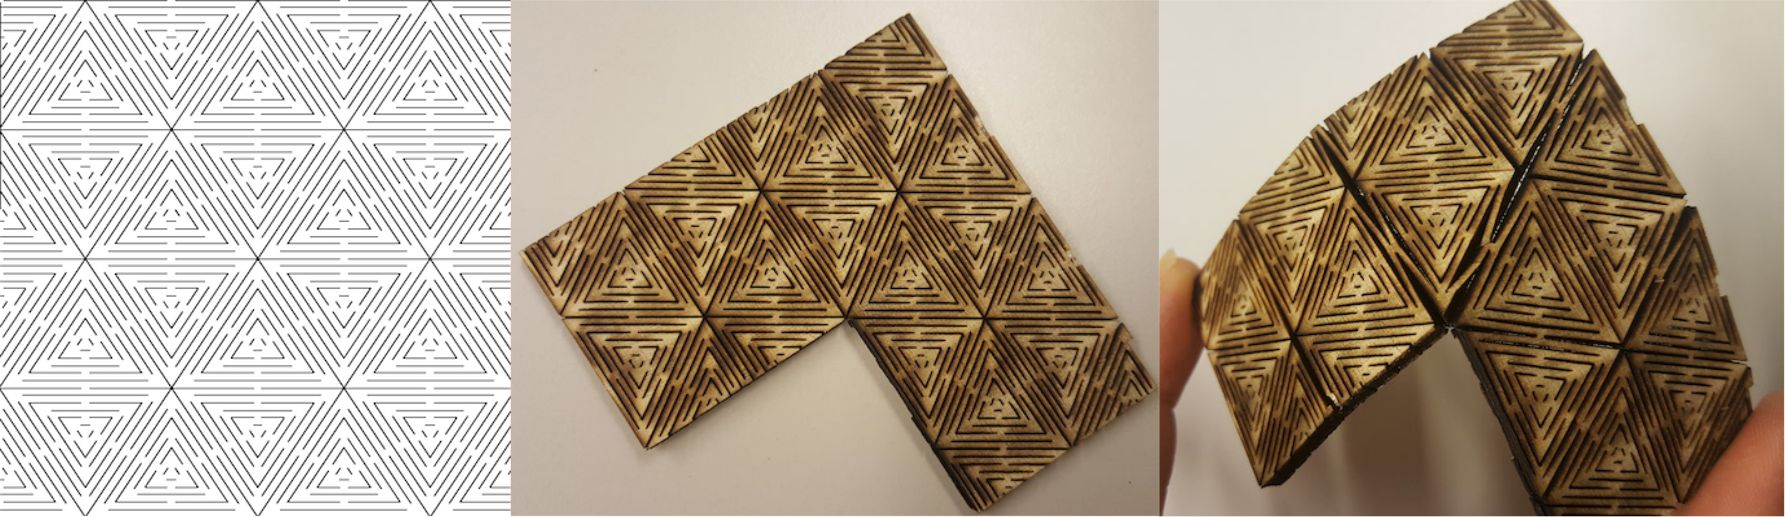 Geodesic Pattern Living Hinge Template for Laser Cut DXF File